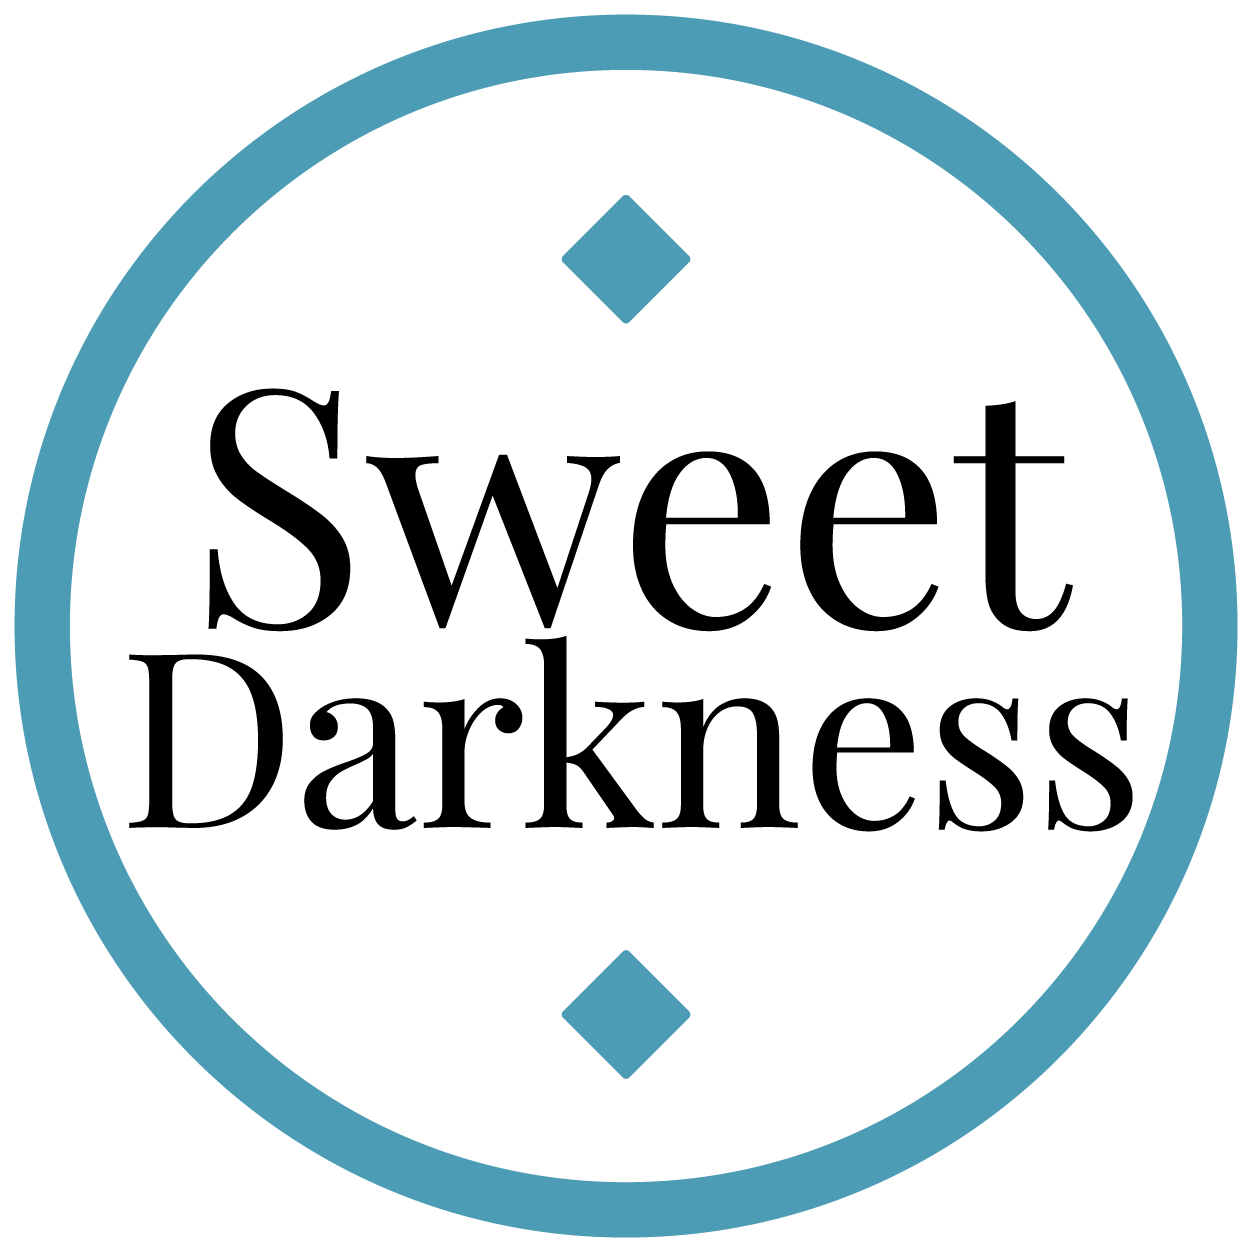 Sweet Darkness